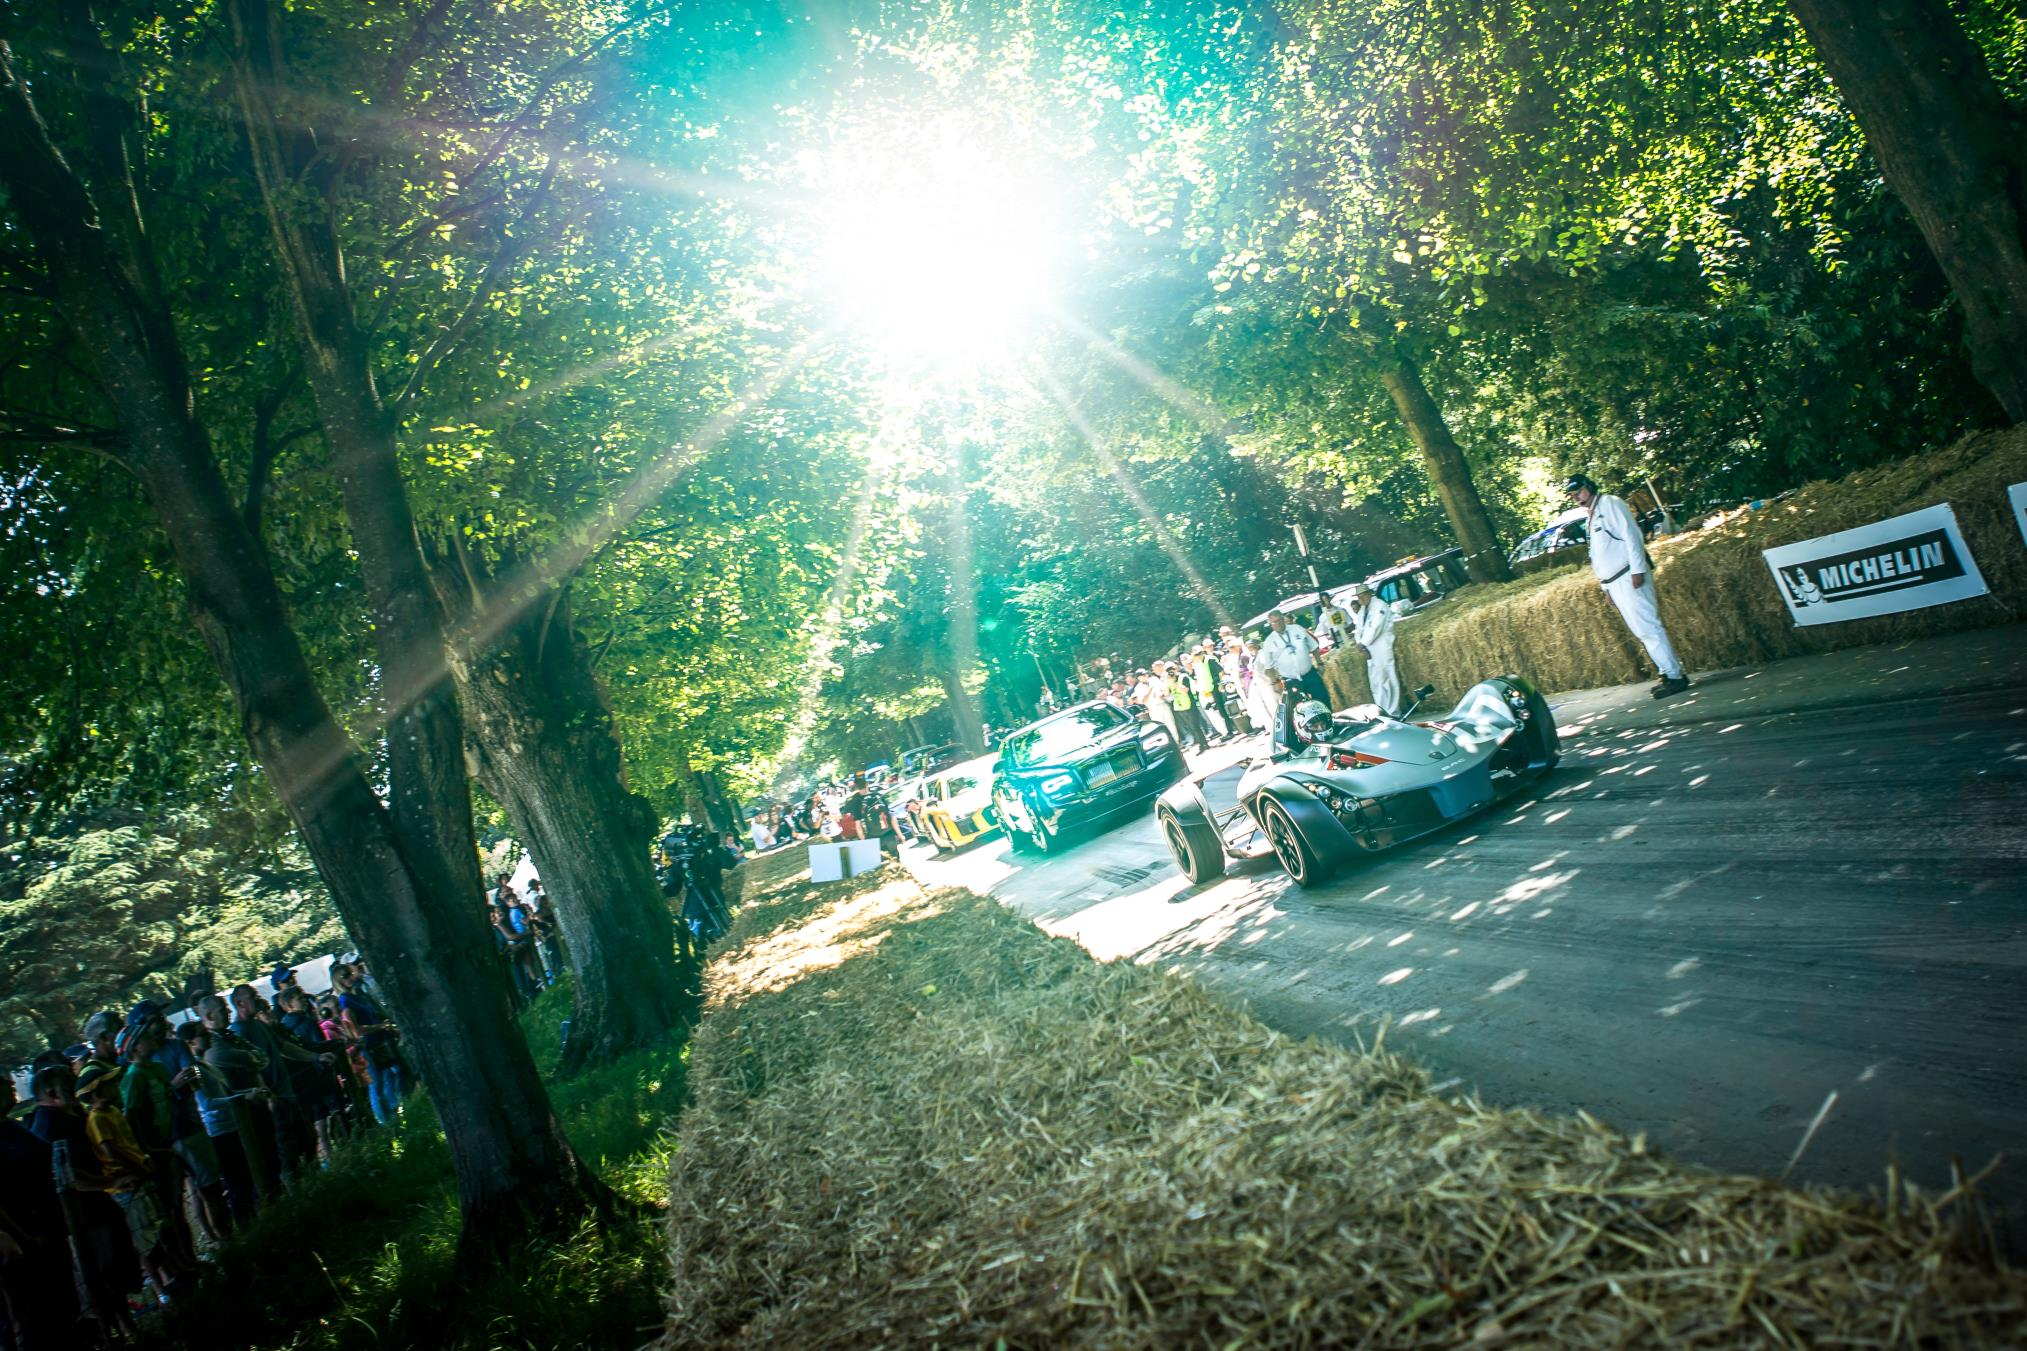 BAC Dominates Class in Goodwood Festival of Speed Hillclimb